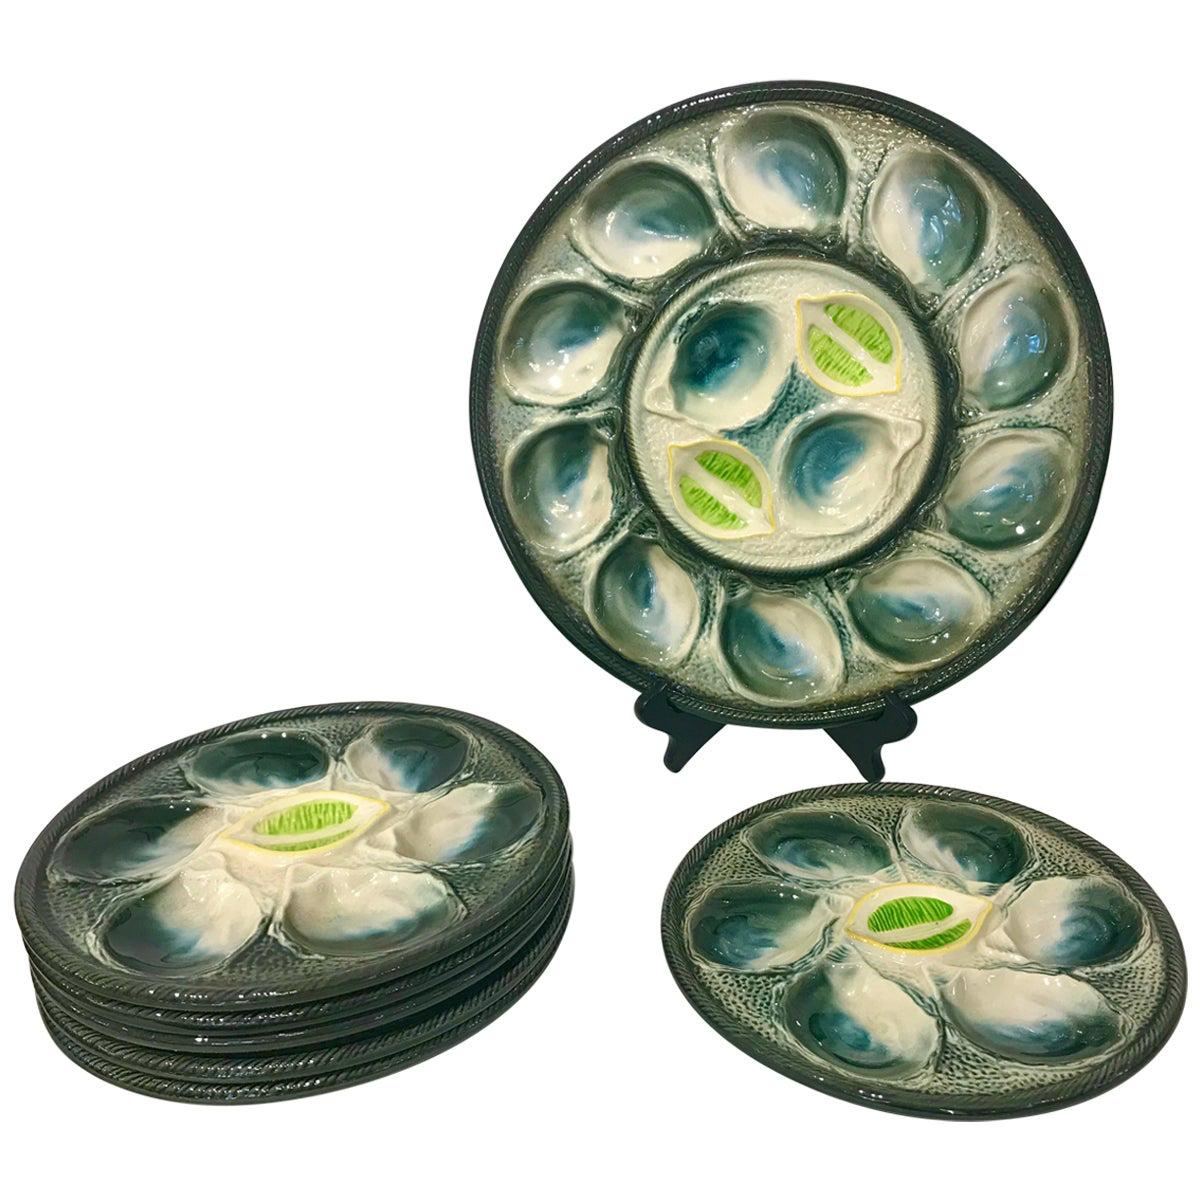 French Art Deco Blue & White Majolica Set of 6 Oyster Plates and Serving Platter